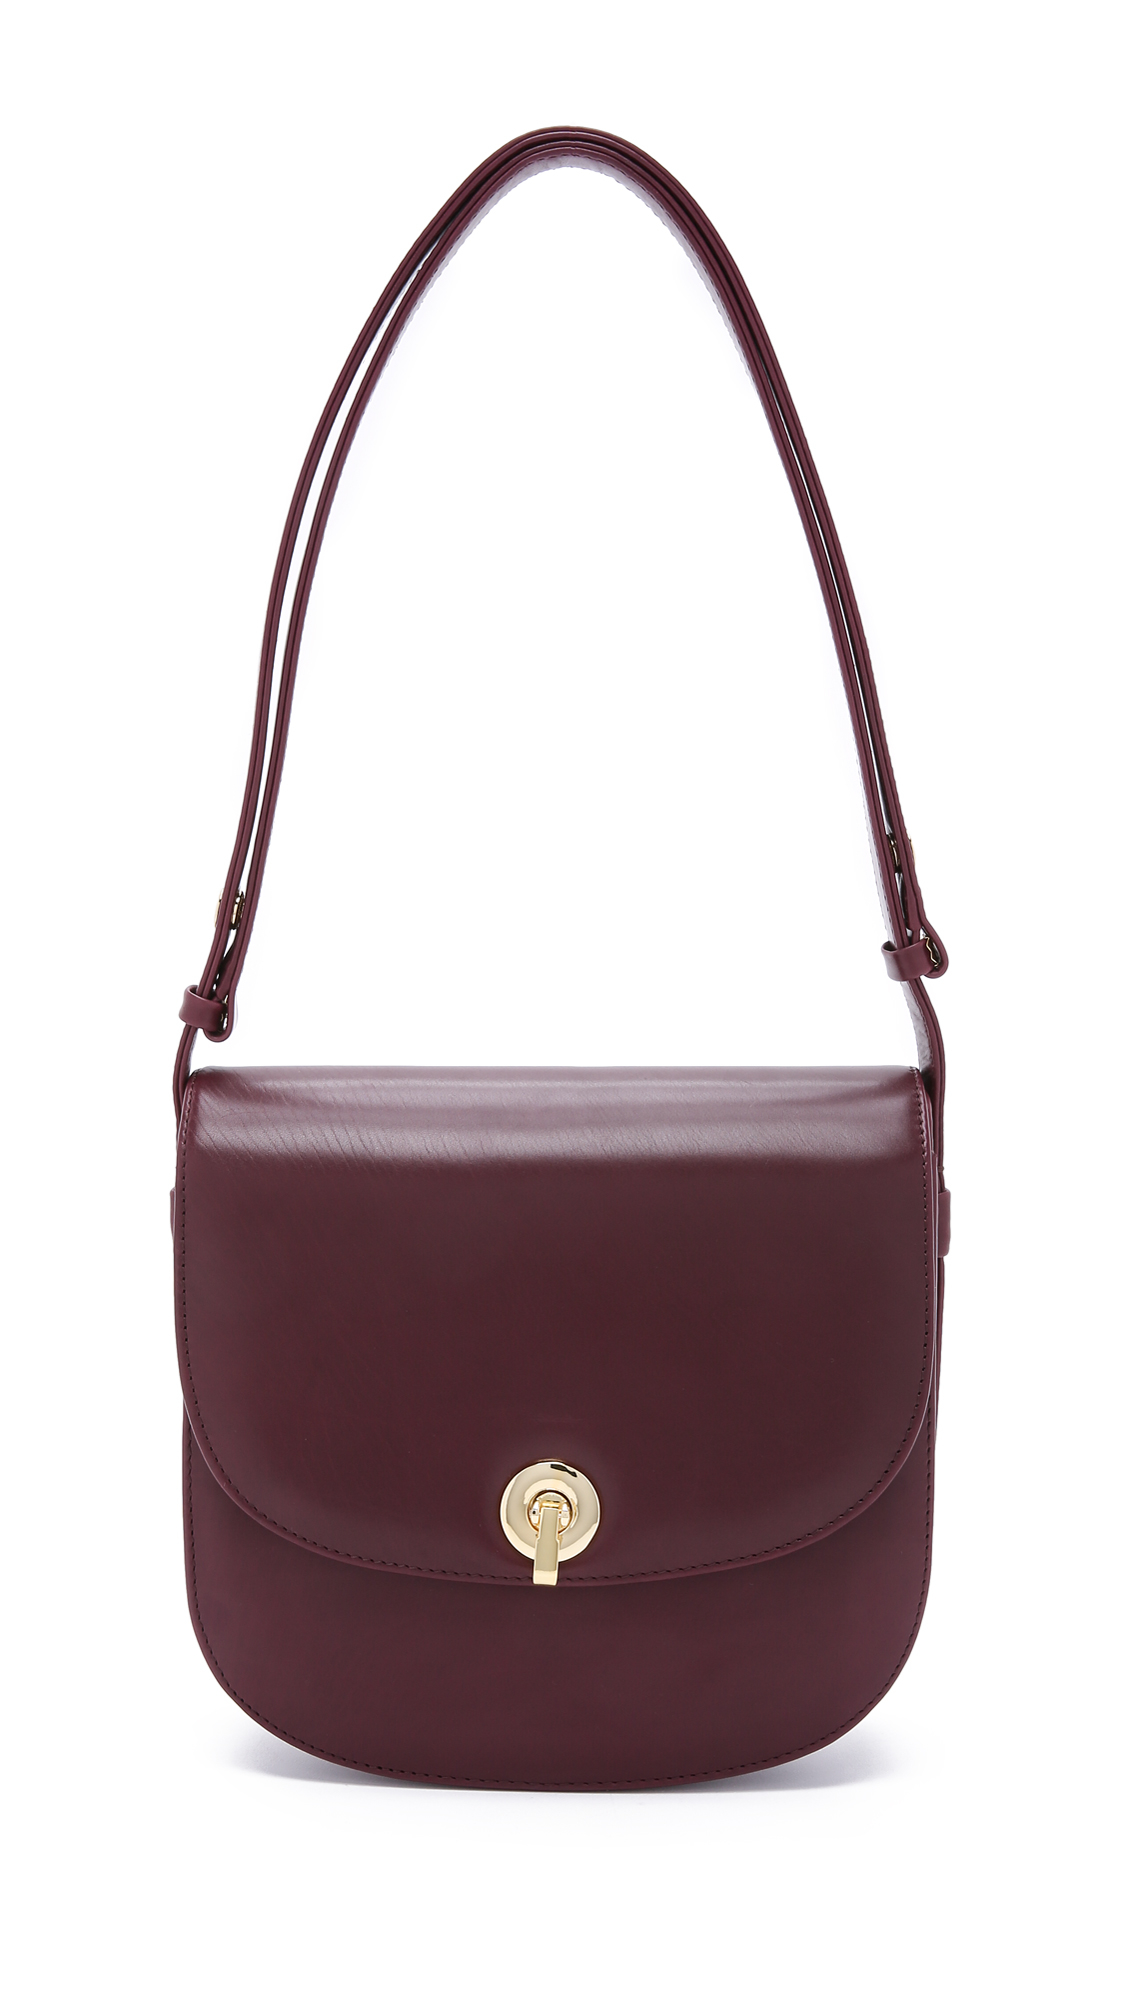 d486cbd816 Gallery. Previously sold at  Shopbop · Women s Saddle Bags ...